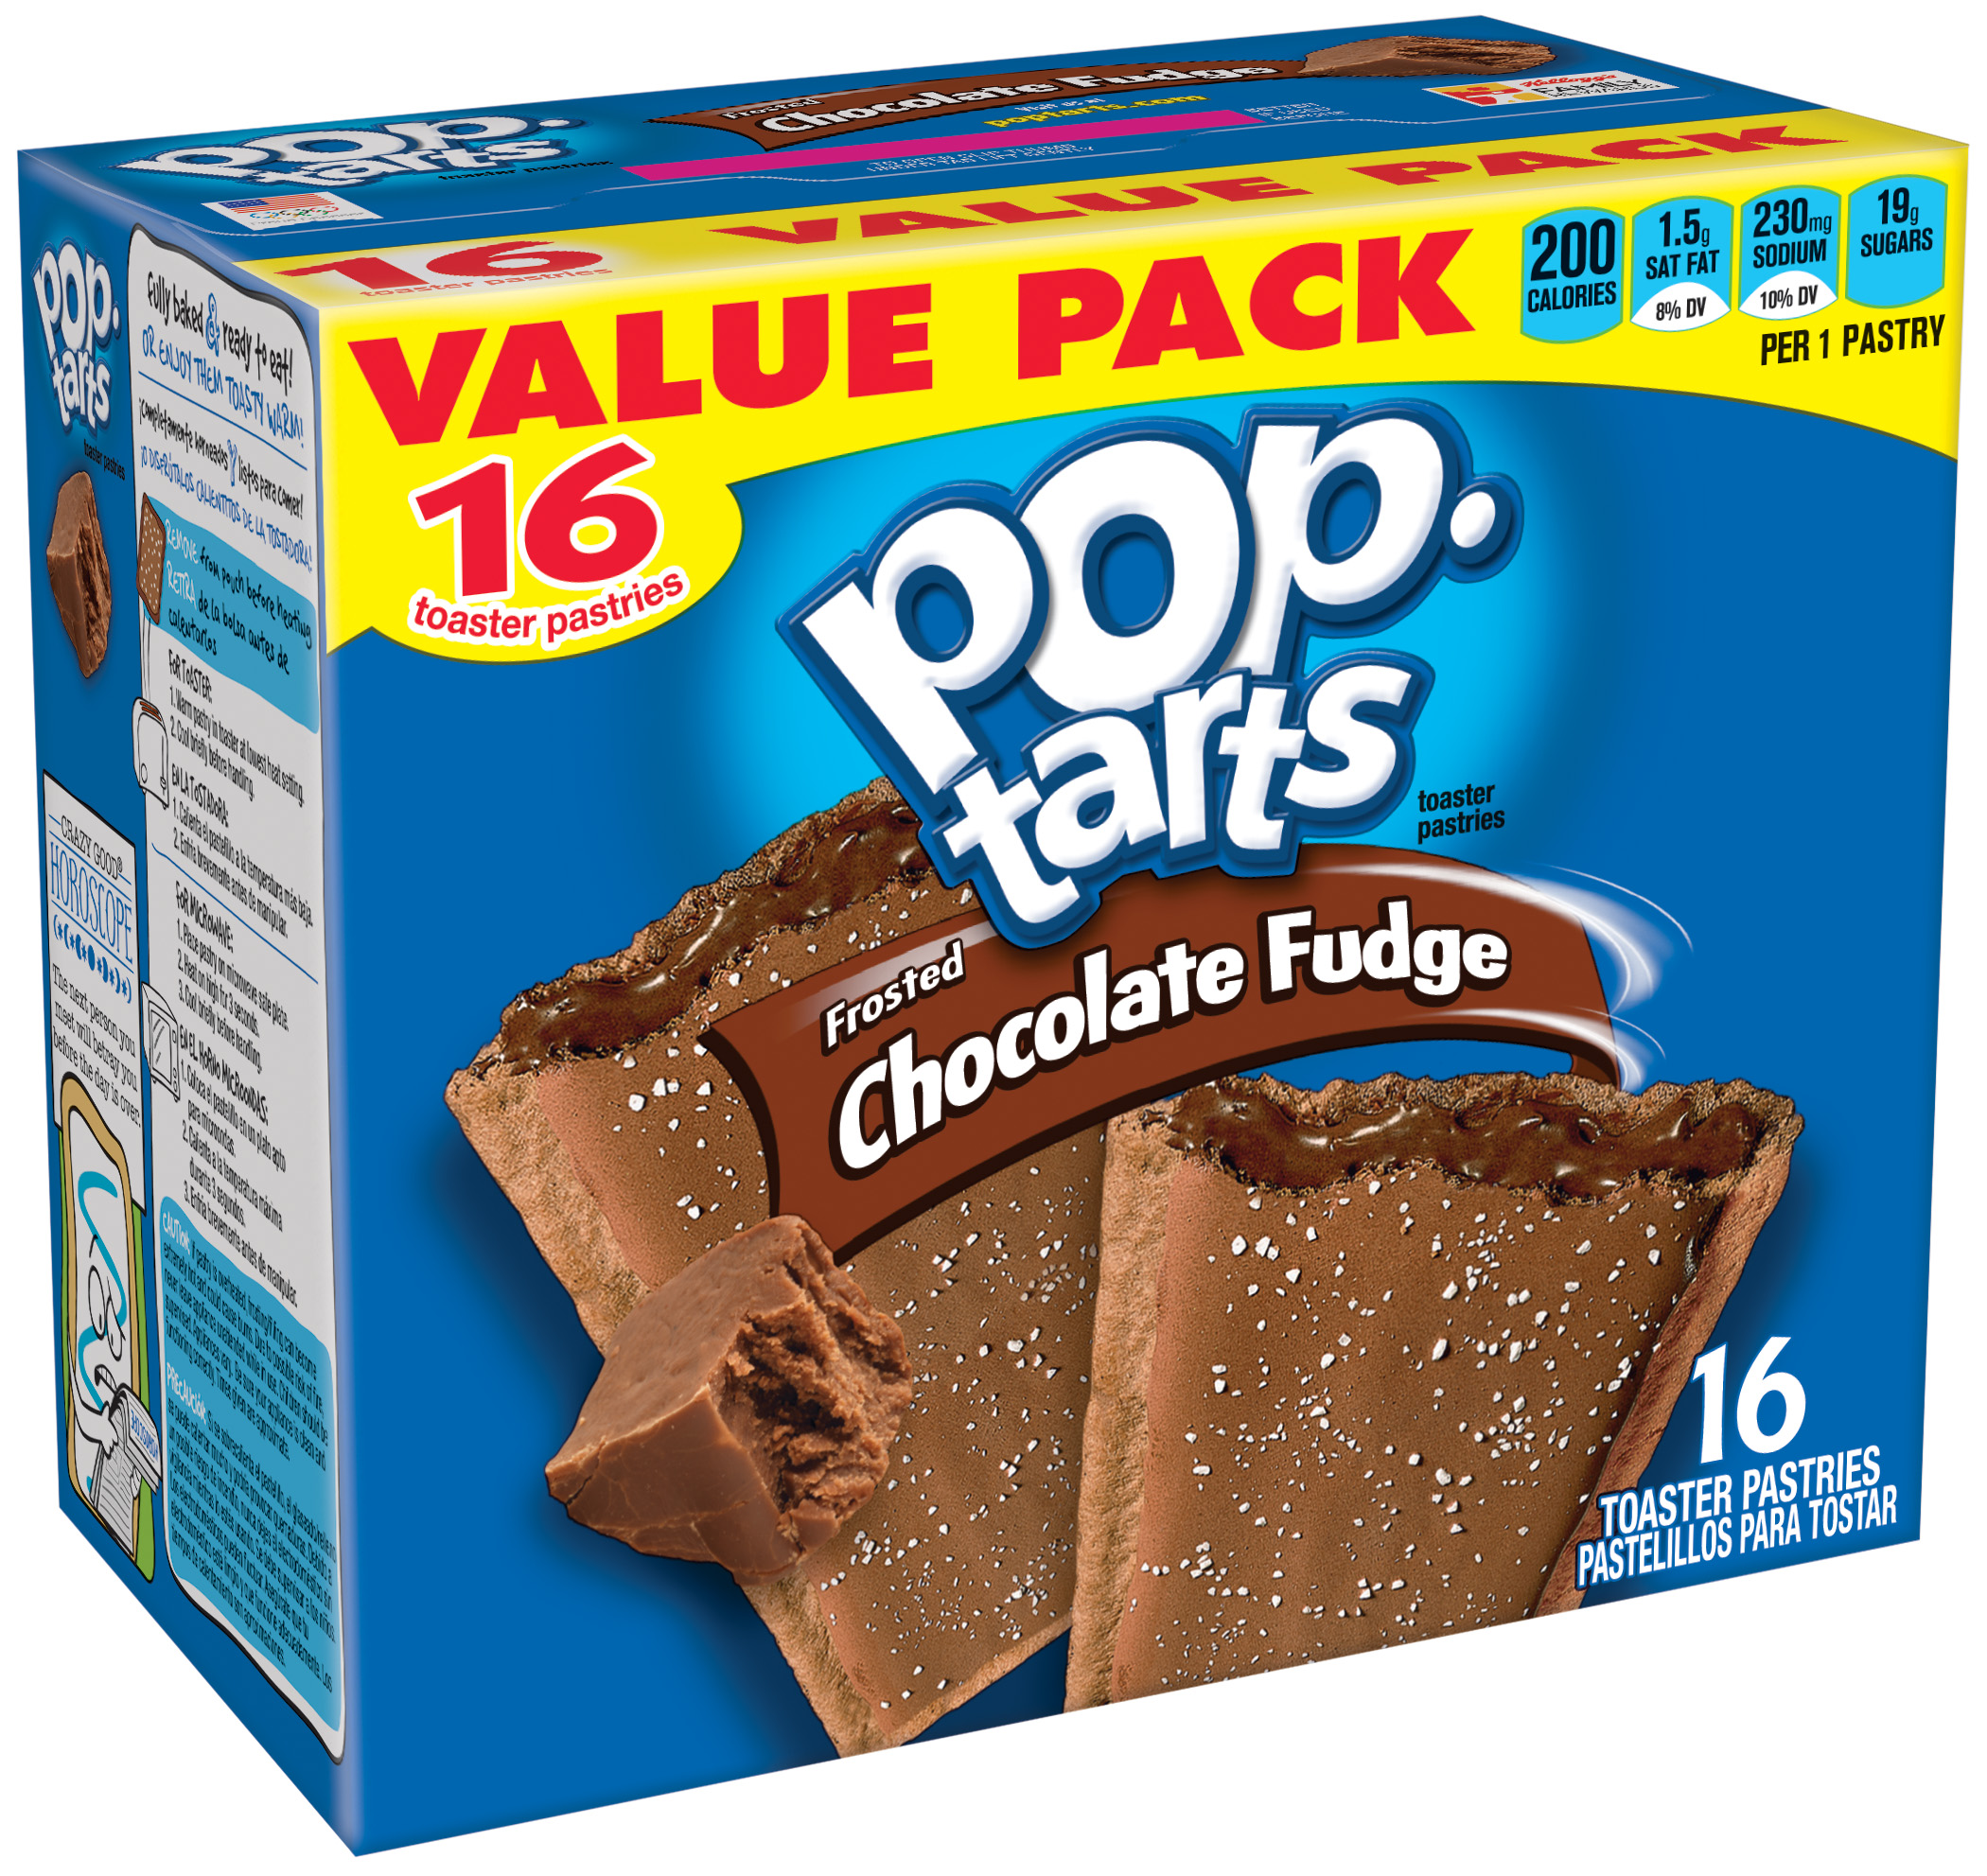 Kellogg's Pop-Tarts Frosted Chocolate Fudge Toaster Pastries Value Pack 16 ct 29.3 oz